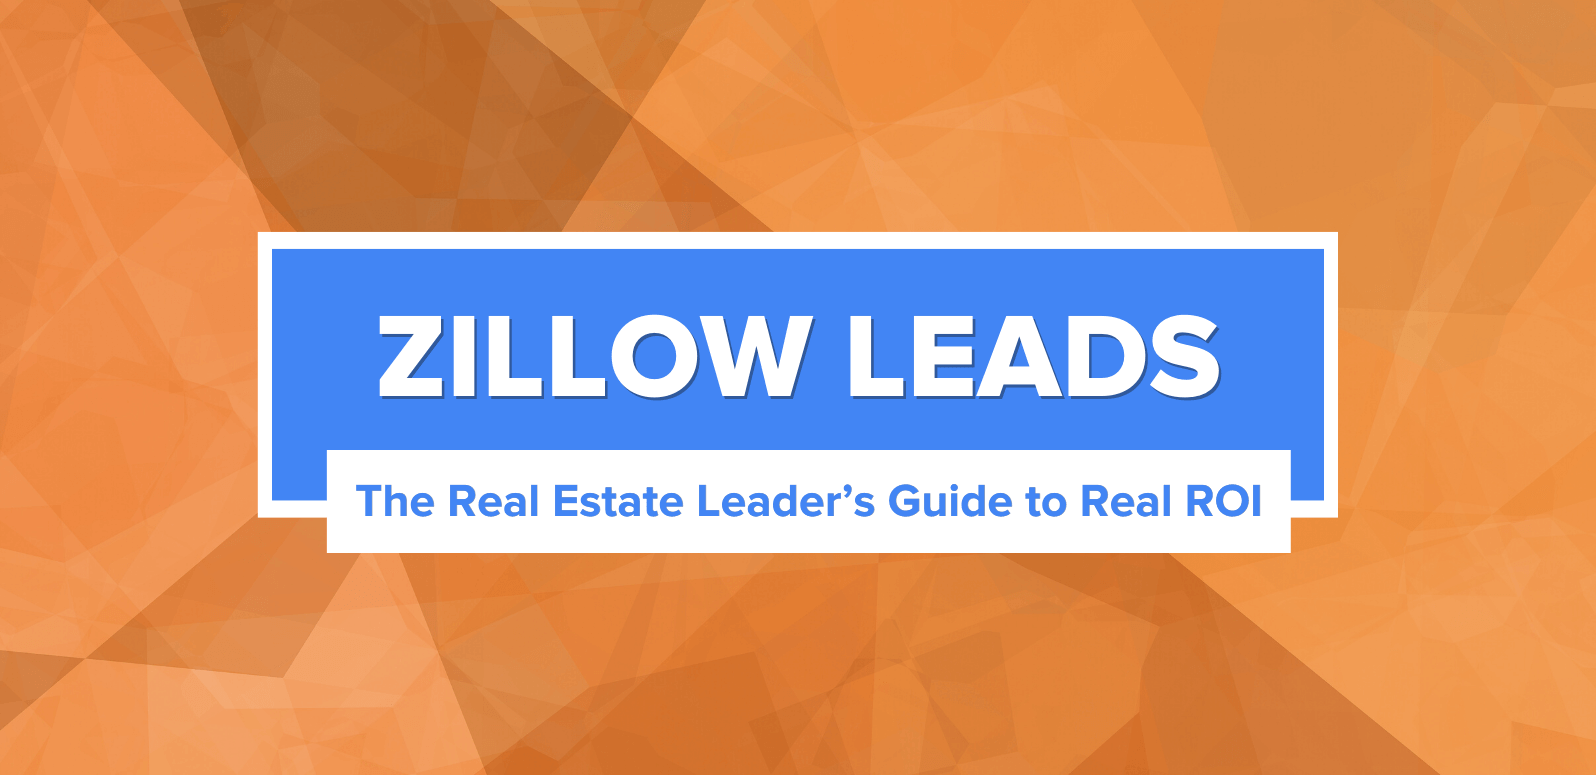 Zillow Leads: The Real Estate Leader's Guide to Real ROI